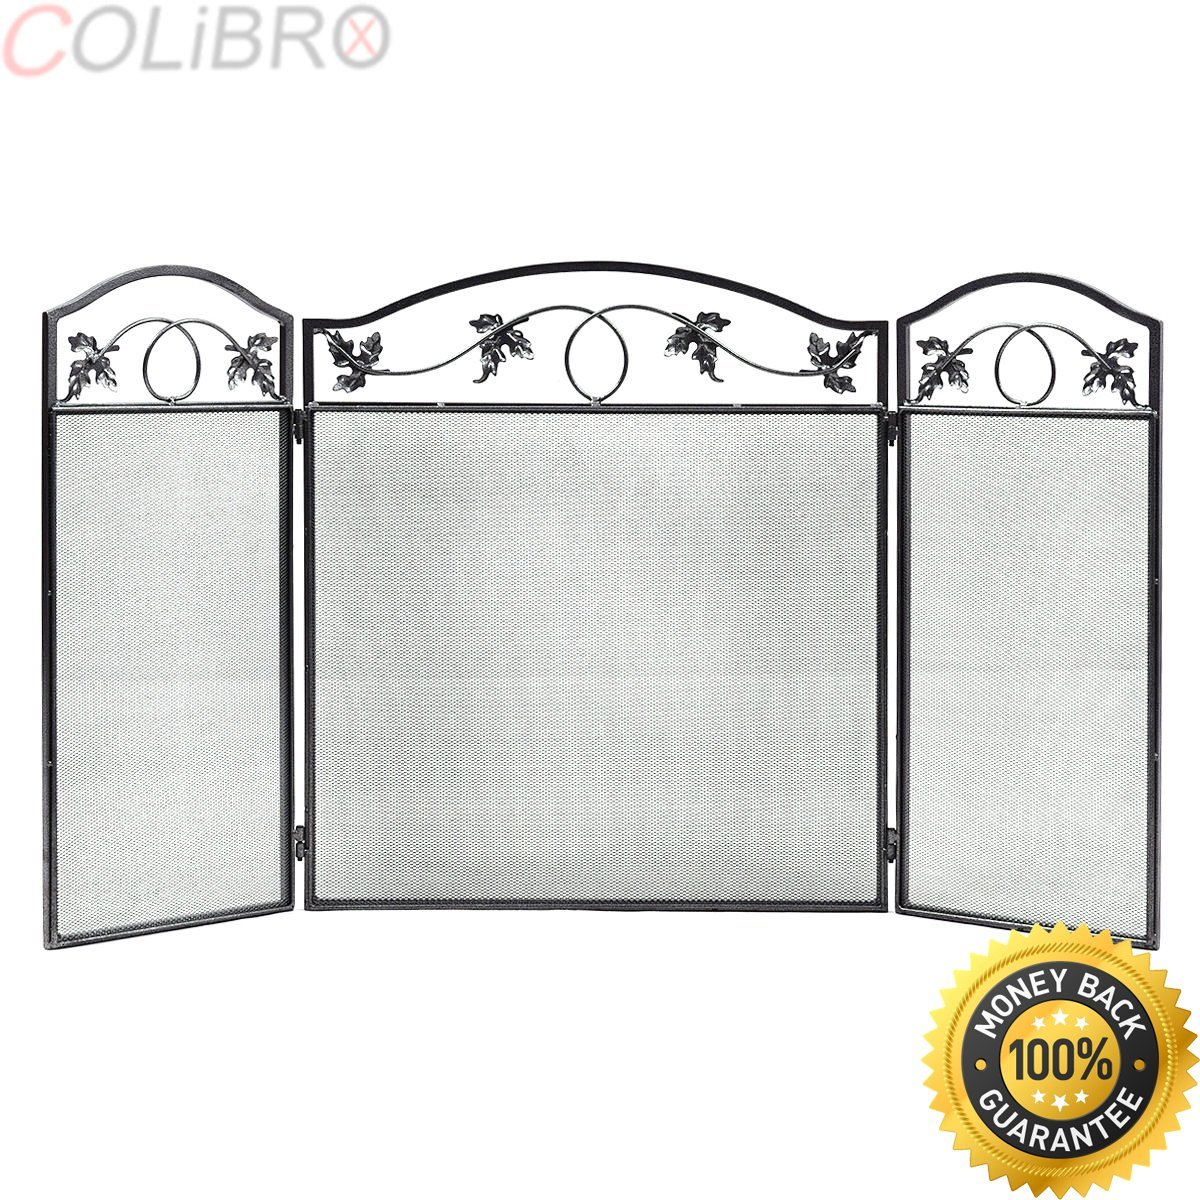 Small Fireplace Screens Under 30 Wide Cheap Fireplace Screen Small Find Fireplace Screen Small Deals On